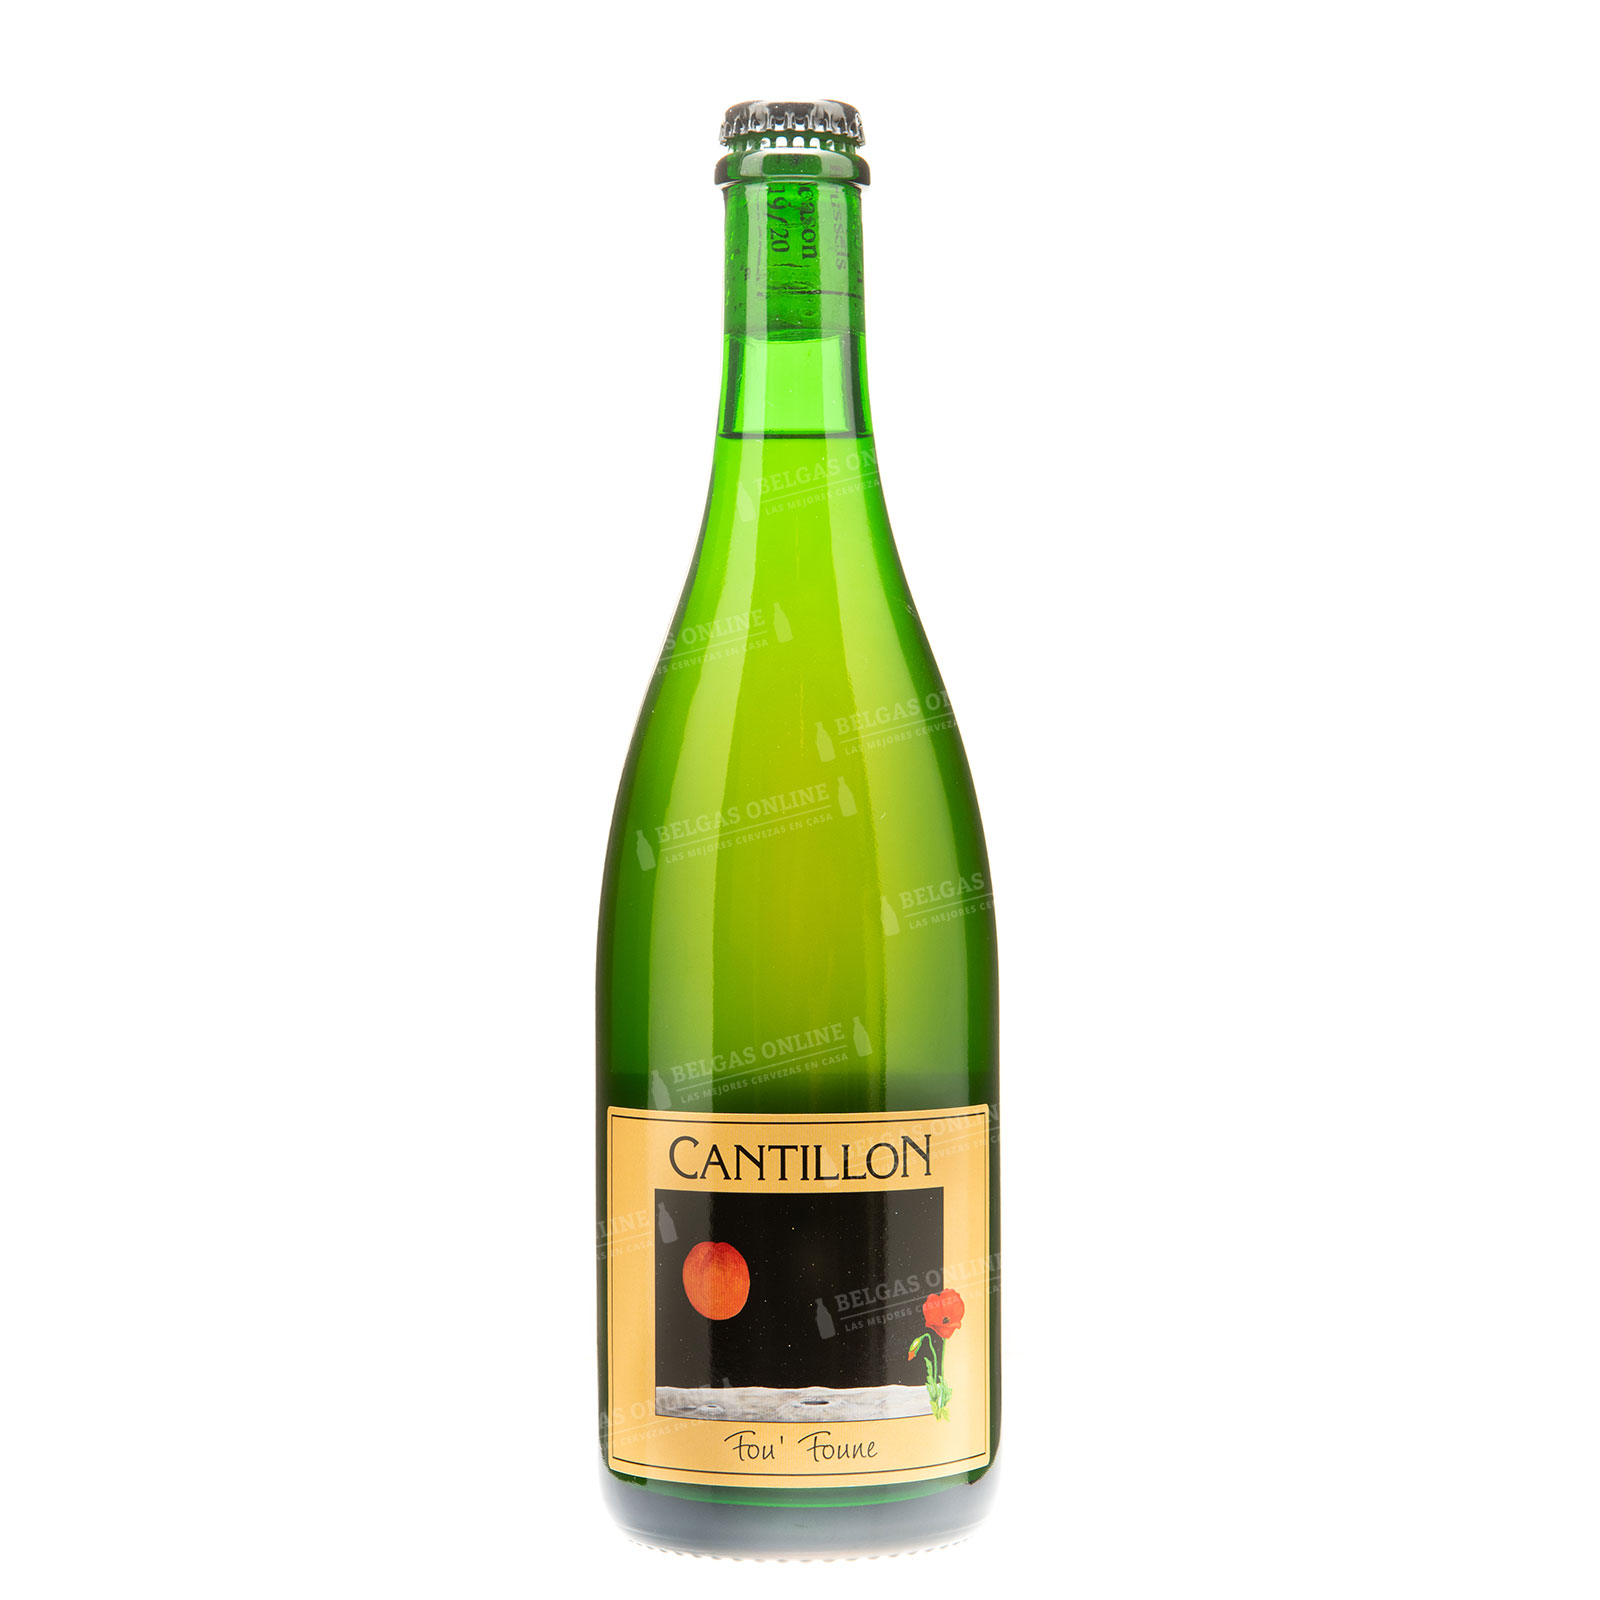 Cantillon Fou Foune 75cl